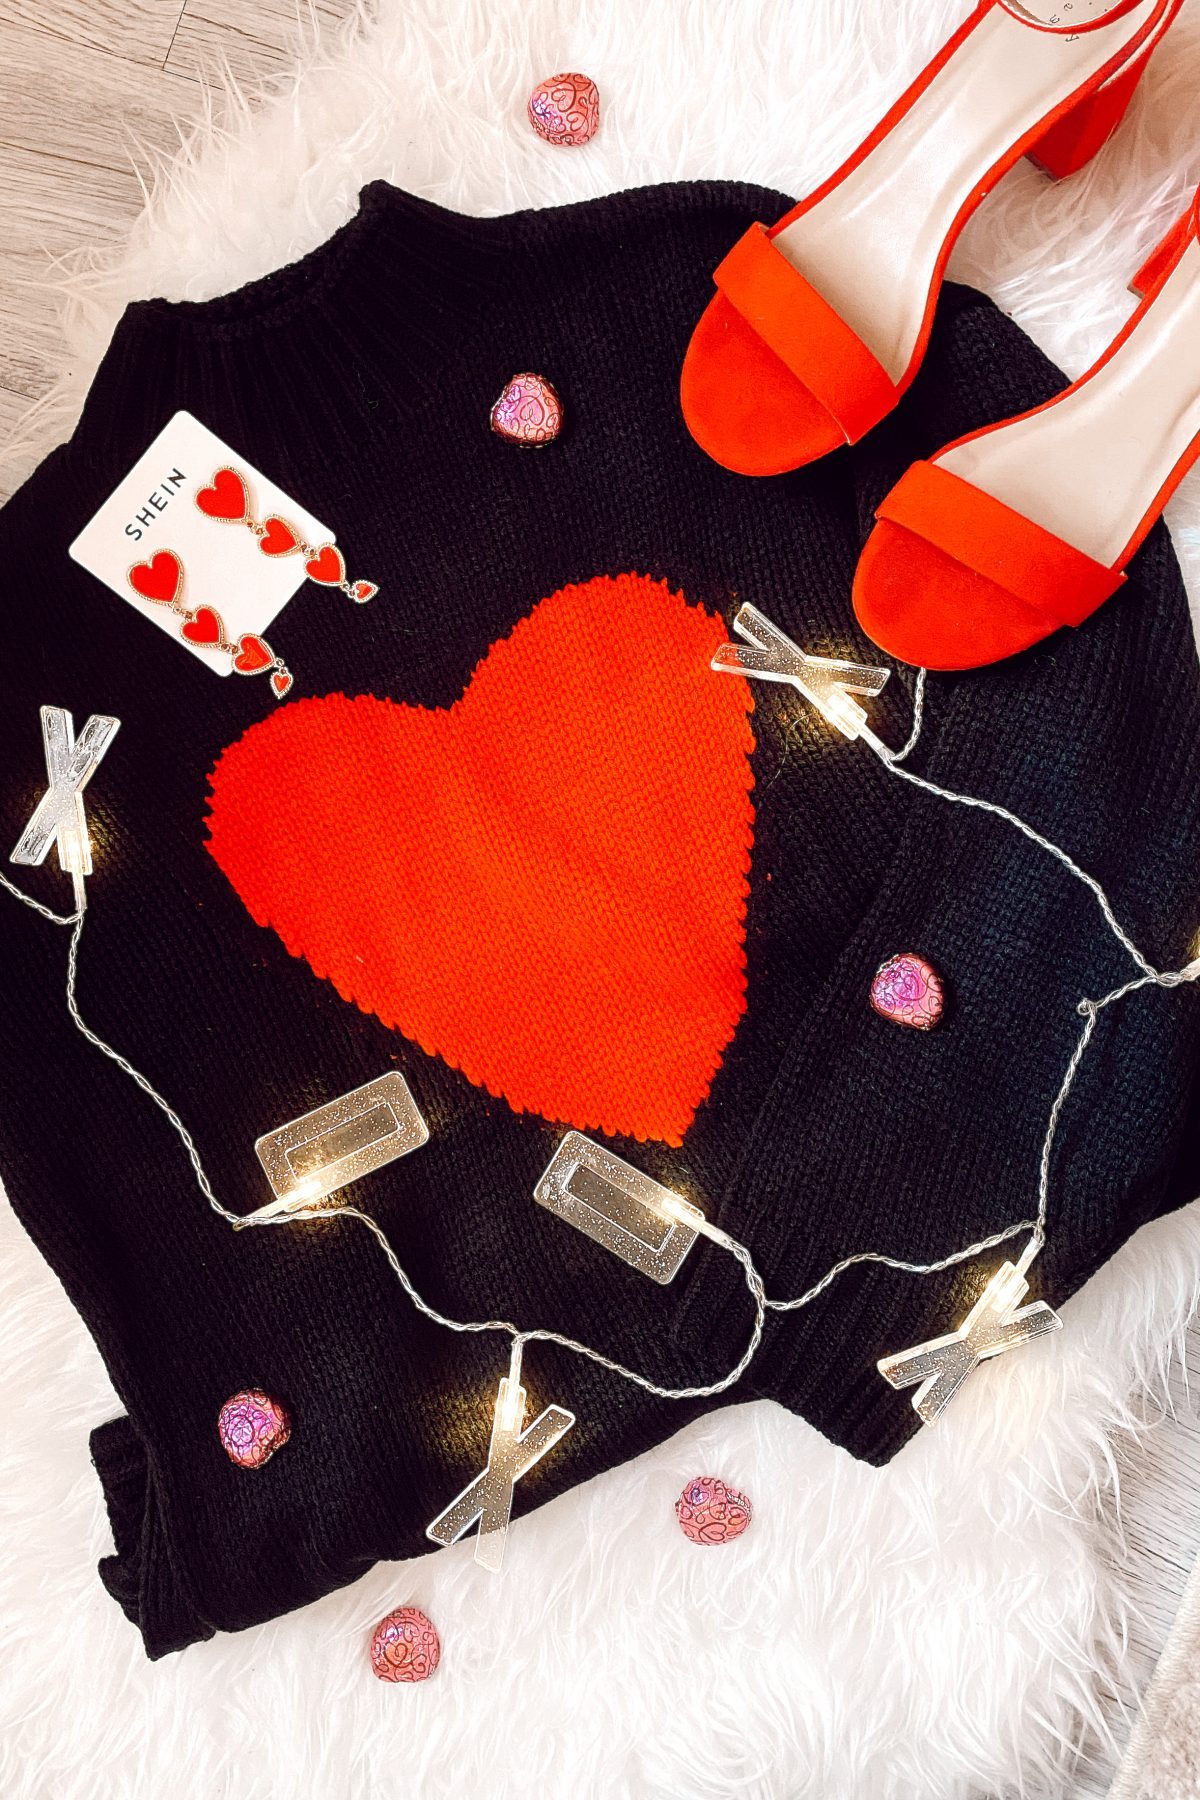 Heart Themed Outfits & Accessories For Valentine's Day By Jessica Linn owner of Linn Style Black and red heart sweater, red heart earrings, red heels.